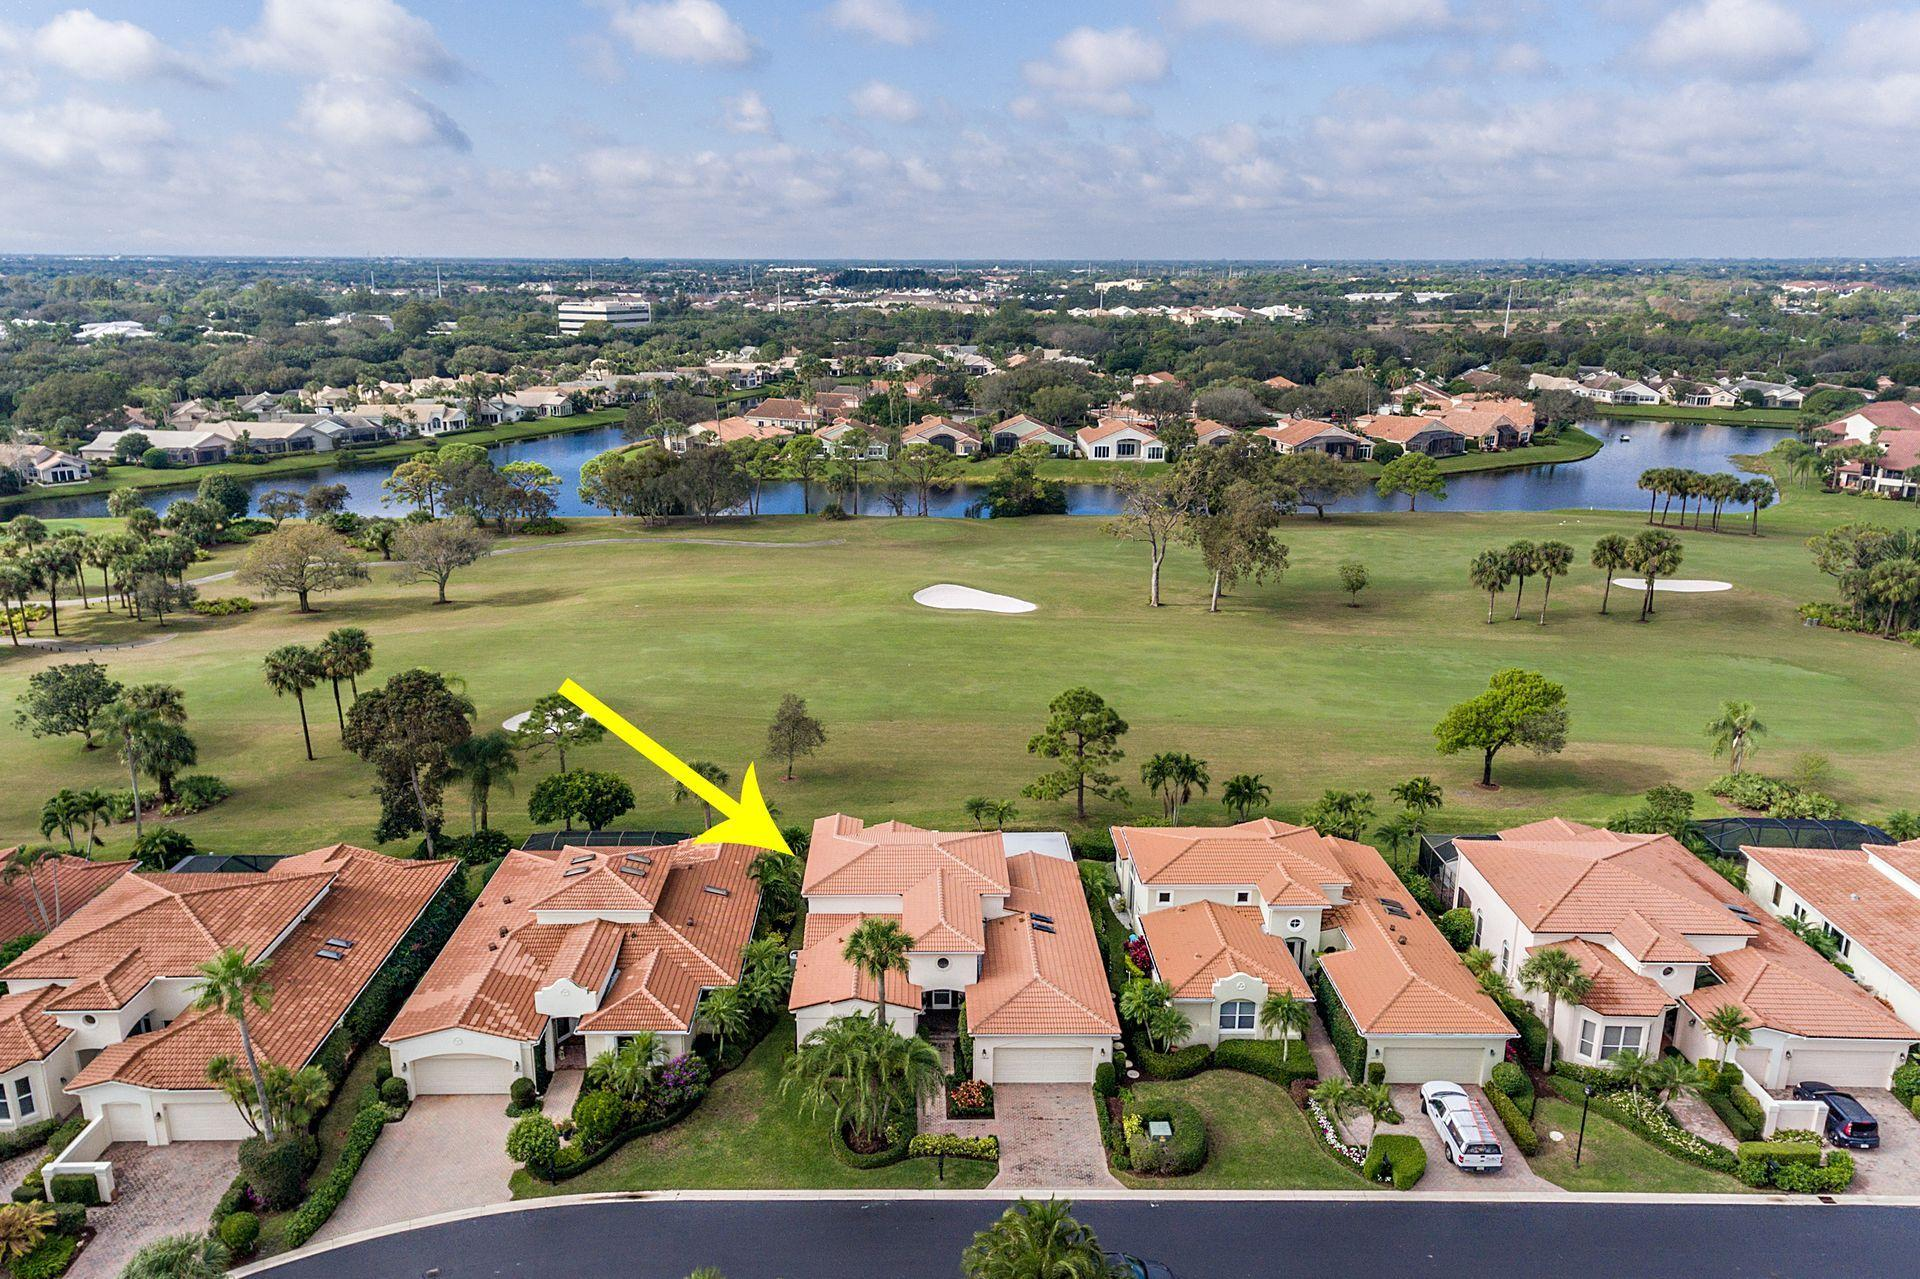 15845 Westerly Terrace, Jupiter, Florida 33477, 3 Bedrooms Bedrooms, ,2.1 BathroomsBathrooms,A,Single family,Westerly,RX-10615917